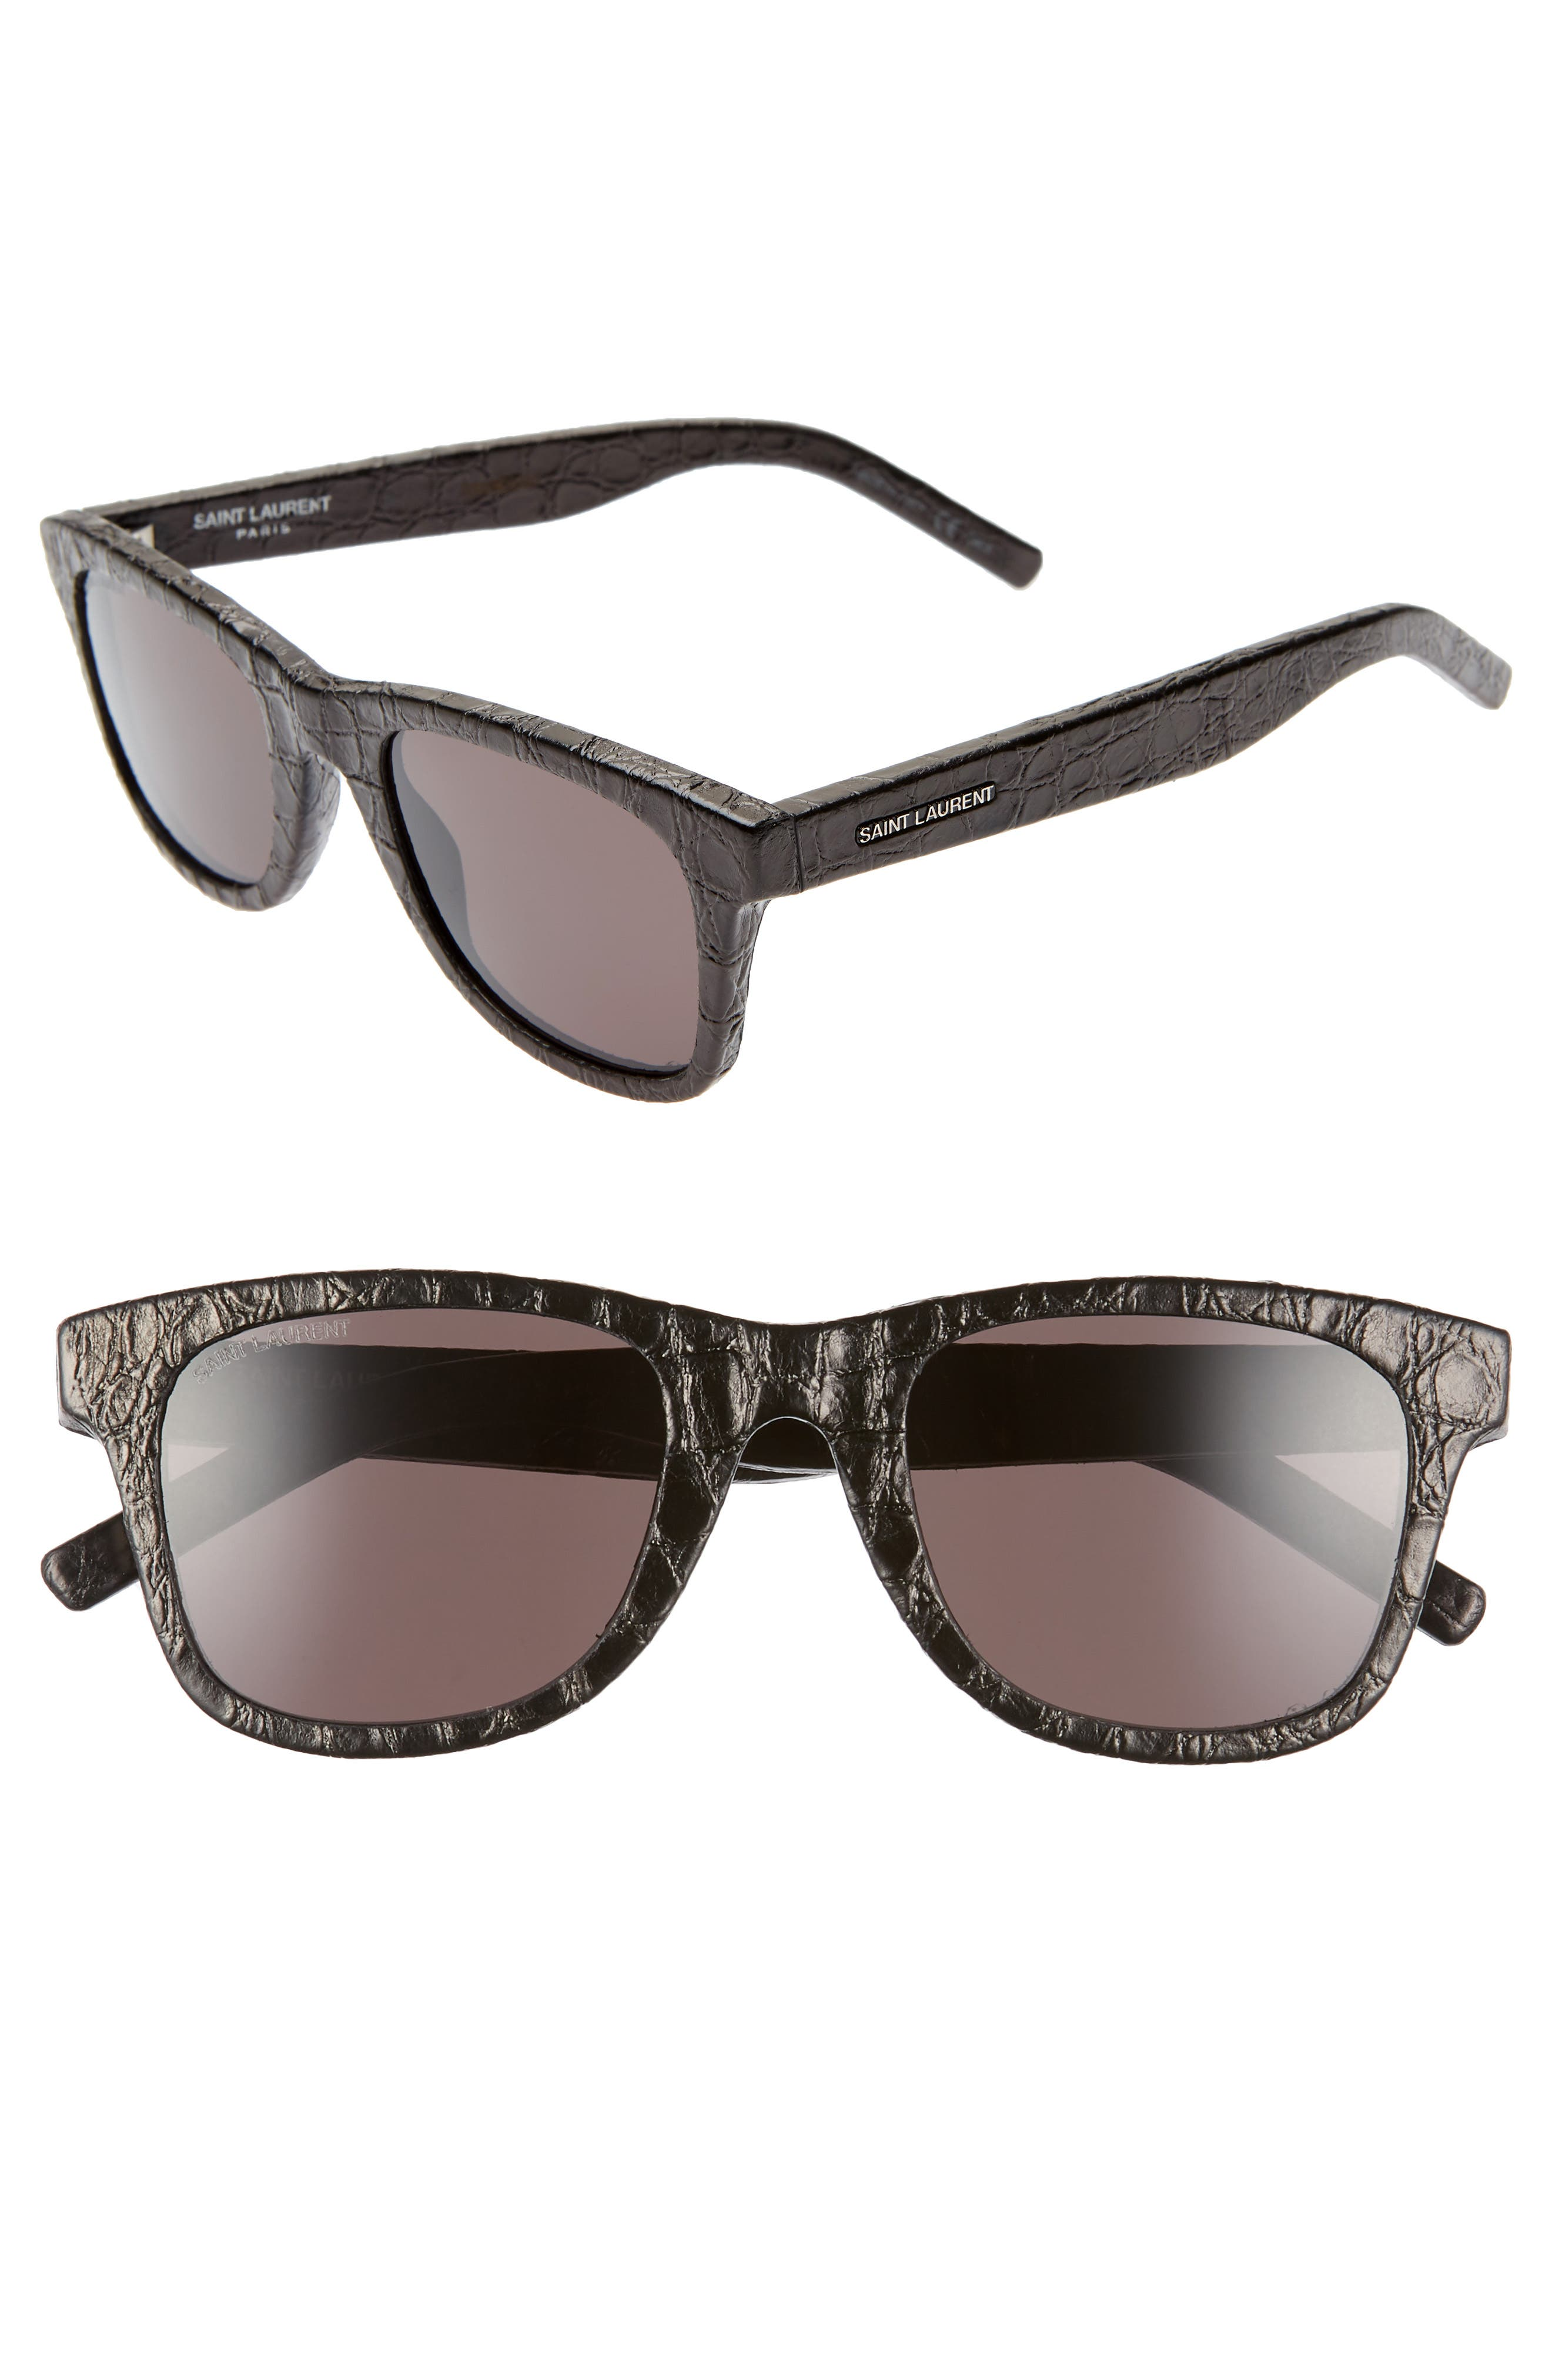 50mm Leather Wrapped Flat Top Sunglasses,                         Main,                         color, BLACK CROCO/ GREY